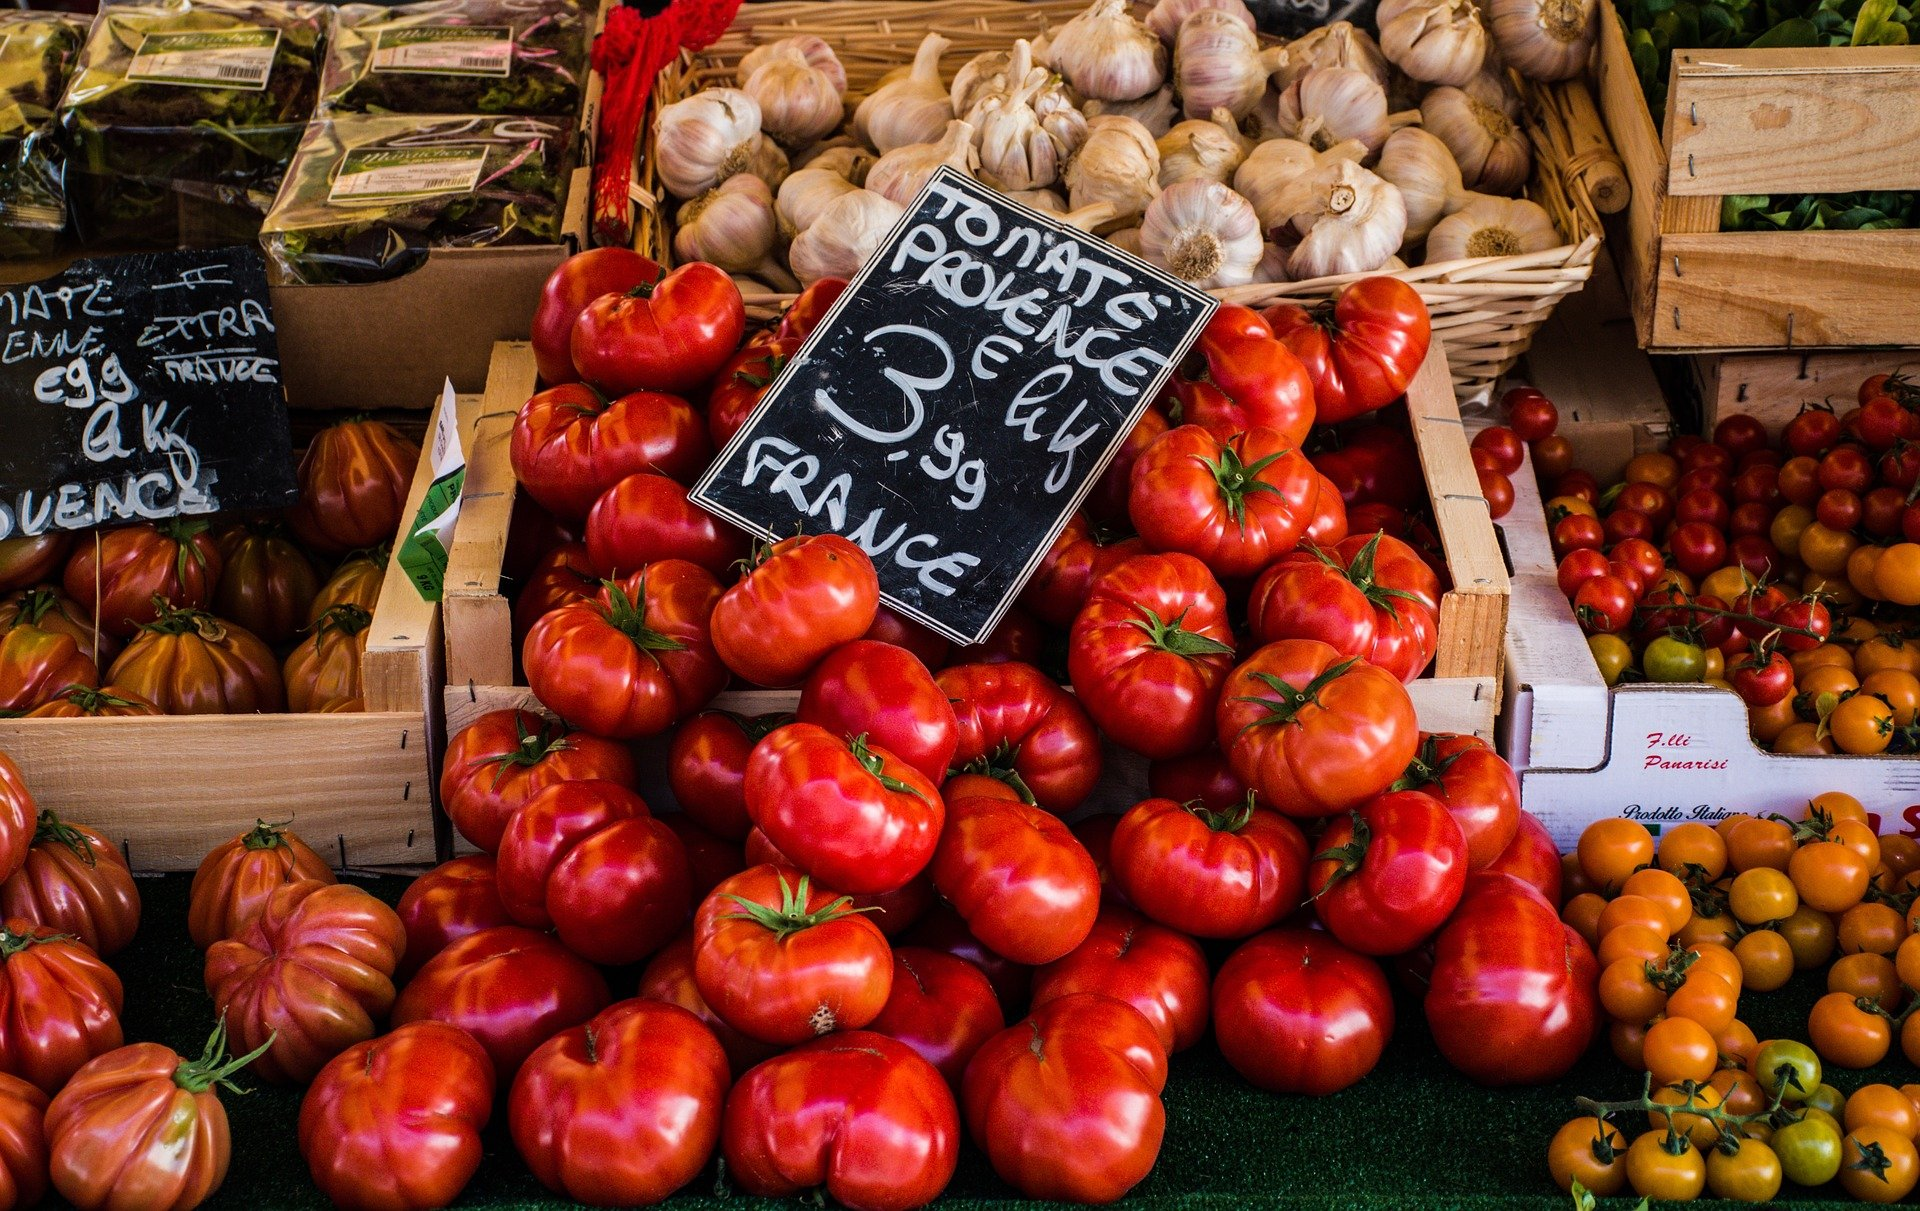 Tomatoes from Provence